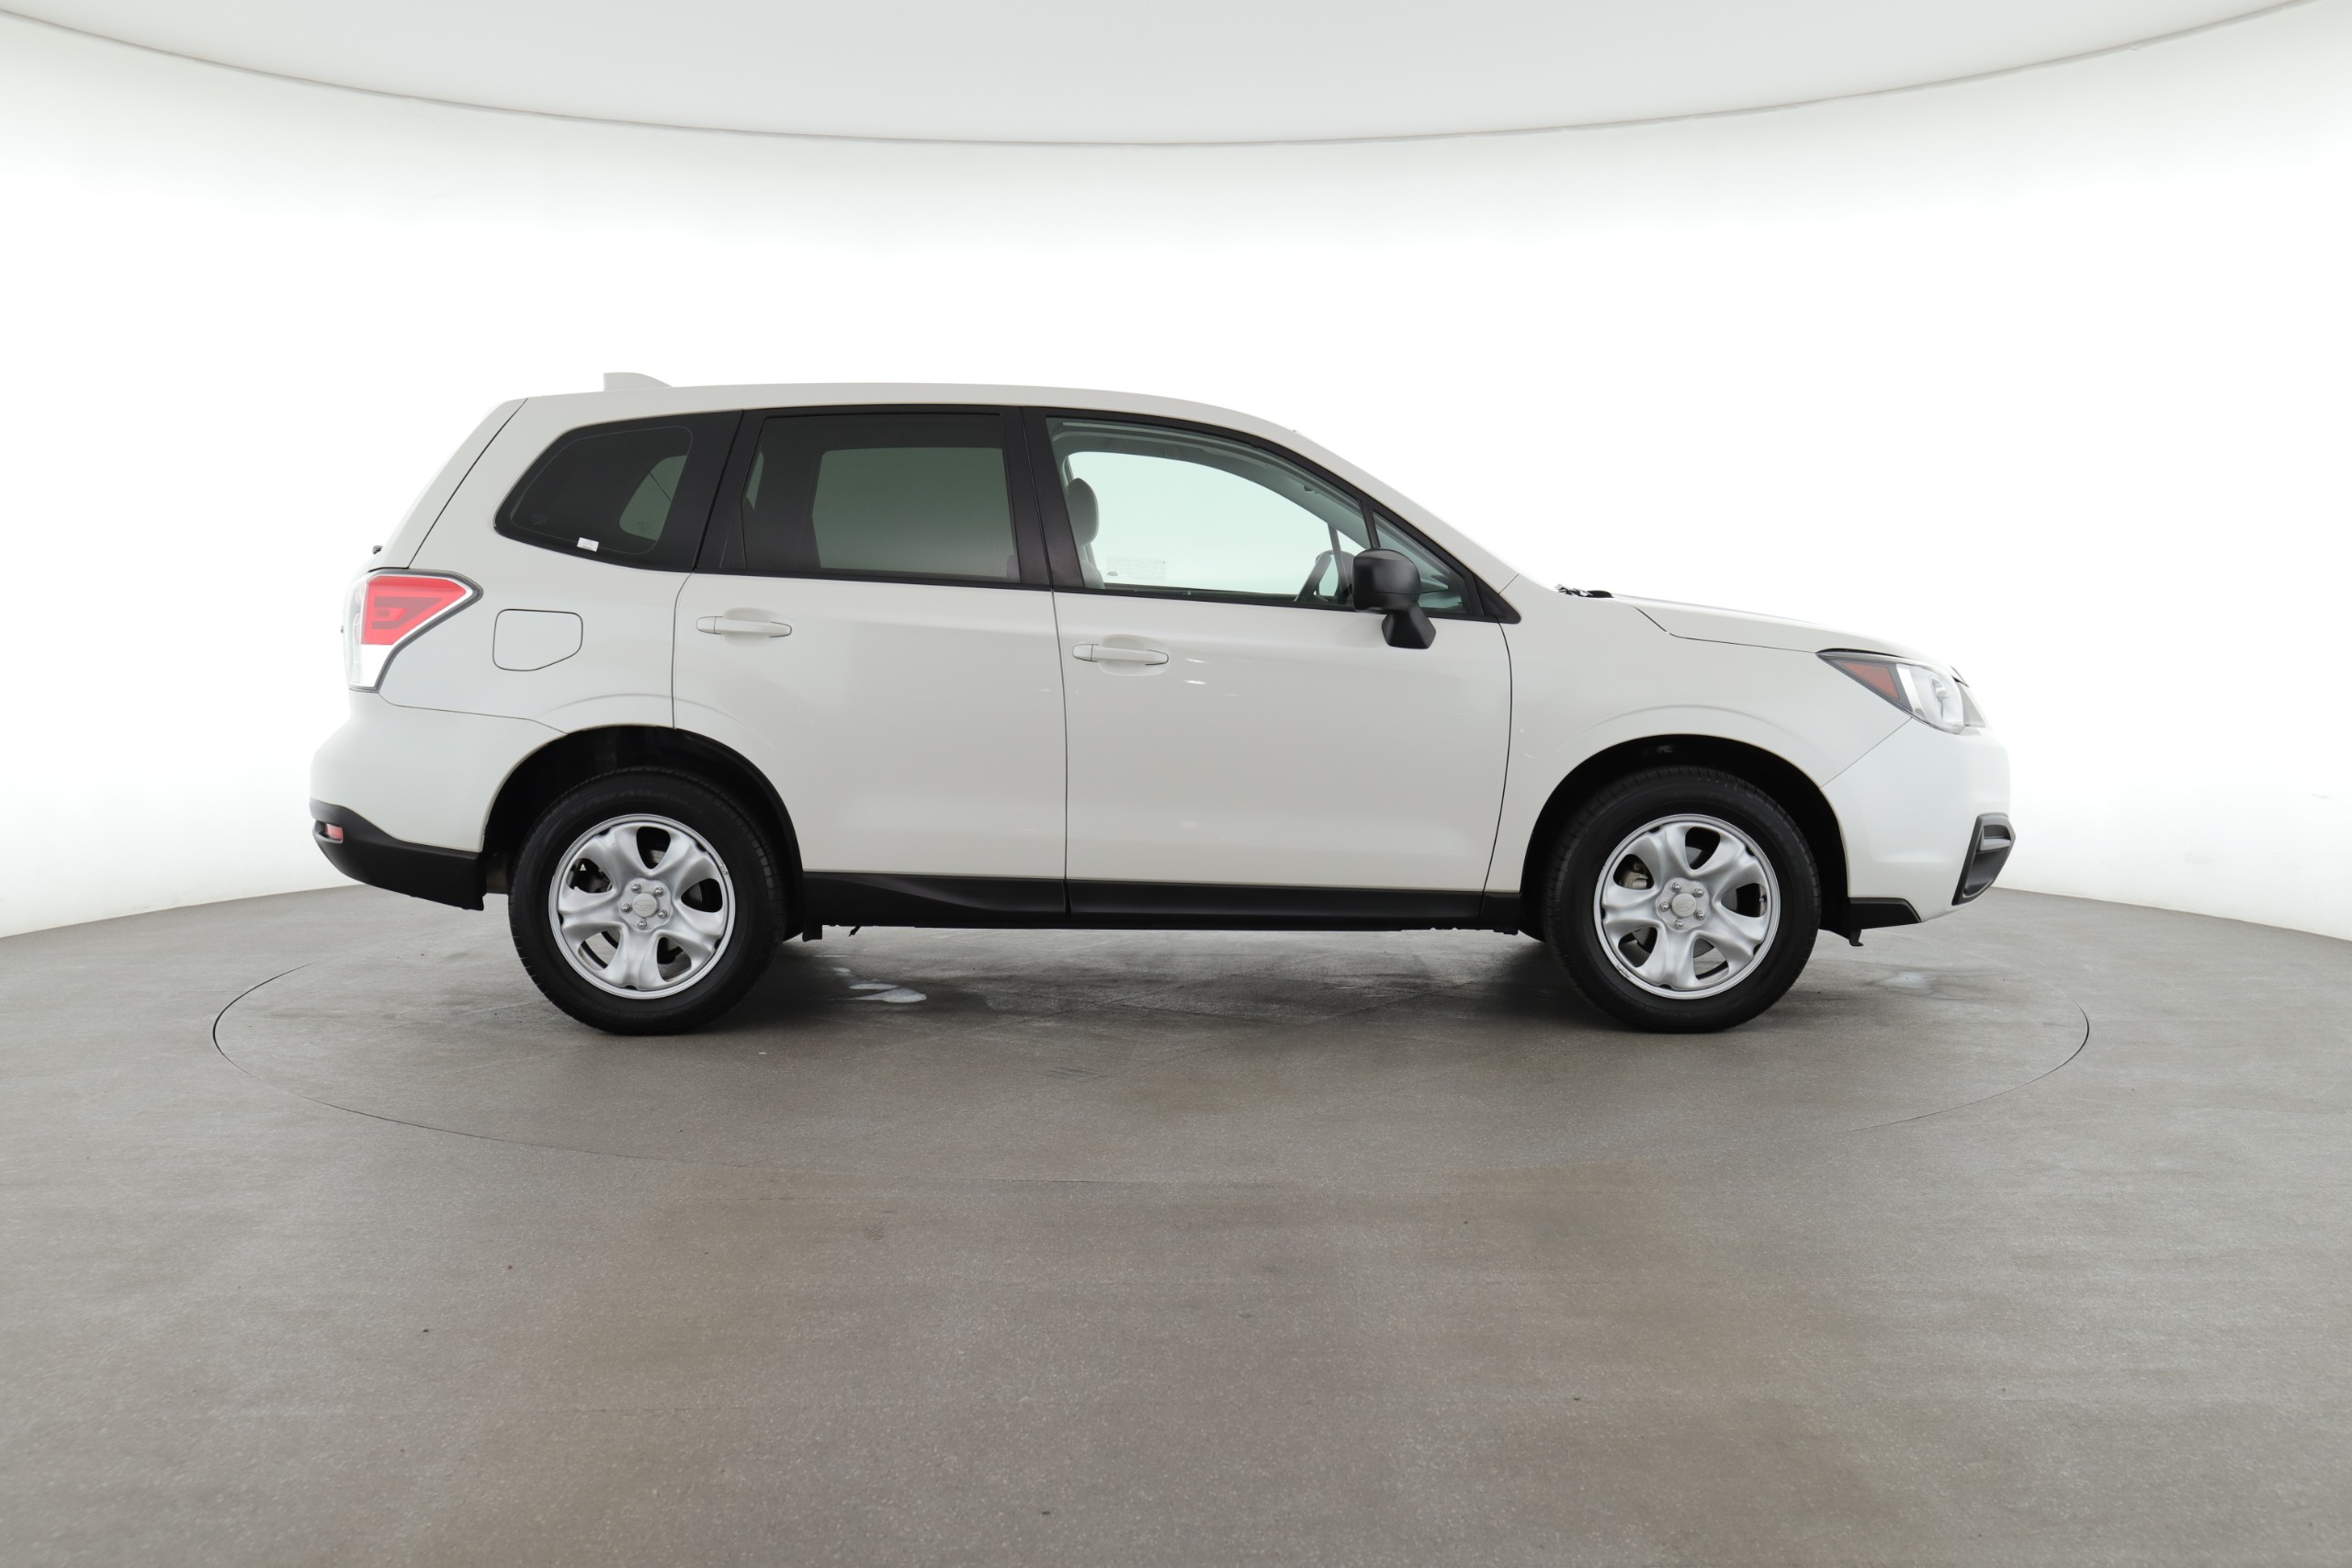 Subaru Forester vs. Outback: Which One Is Better For You?